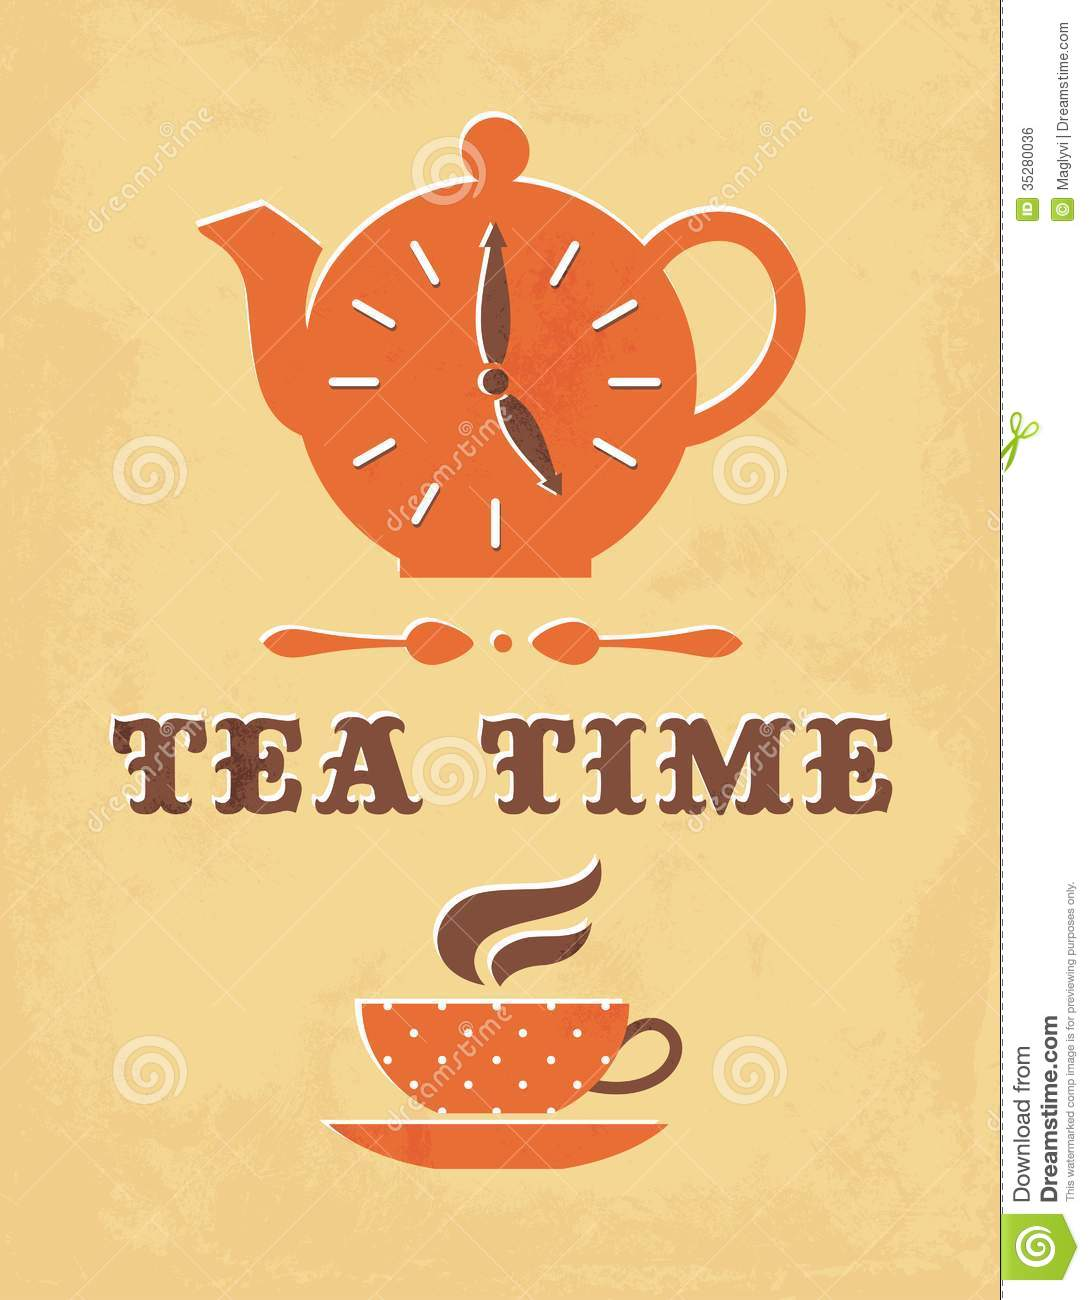 Retro illustration of teapot with clock face and tea cup in vector.